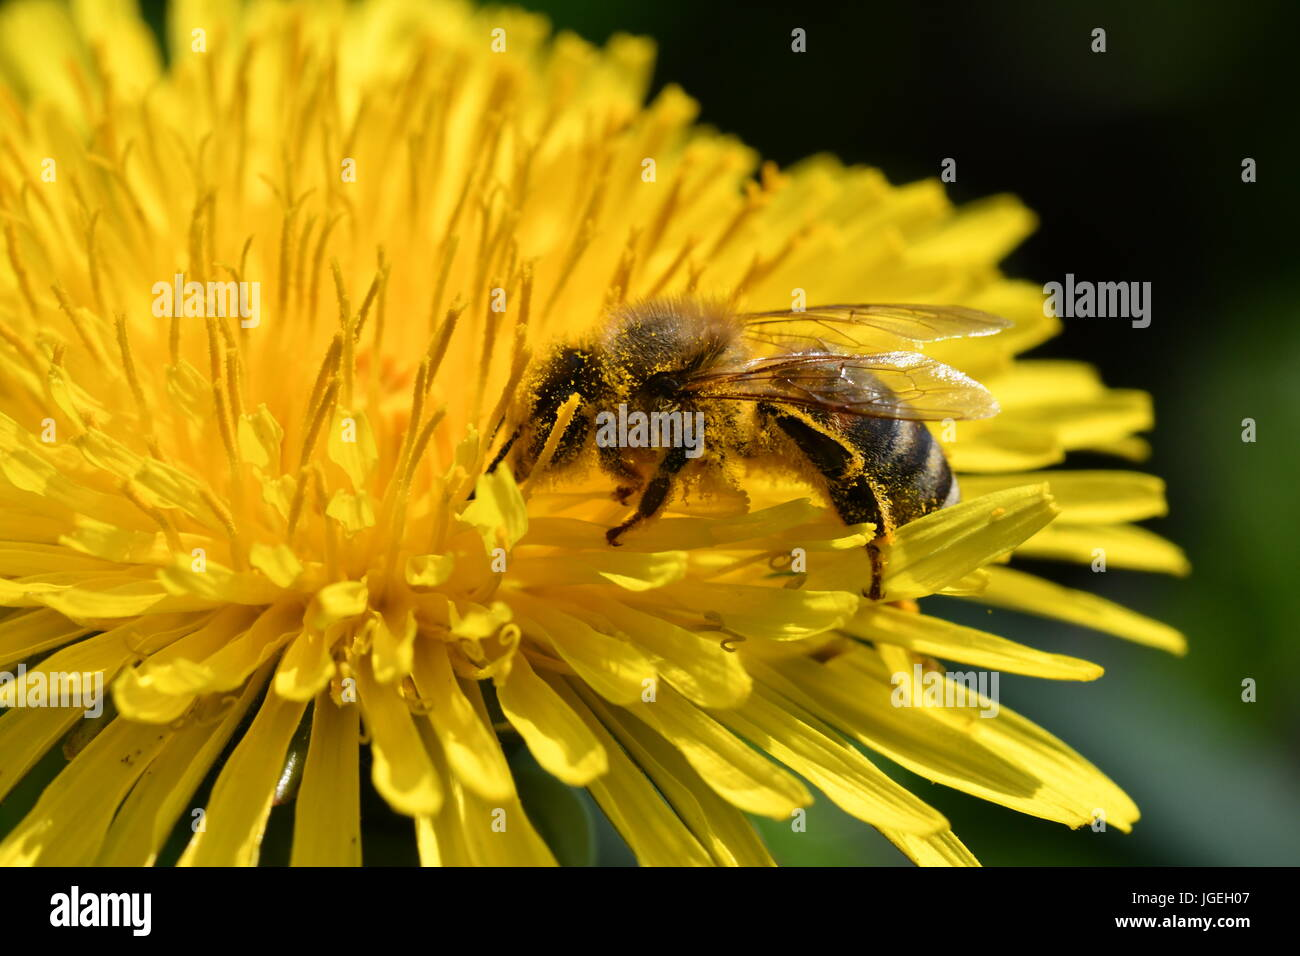 macro The bee polinates on the flower - Stock Image